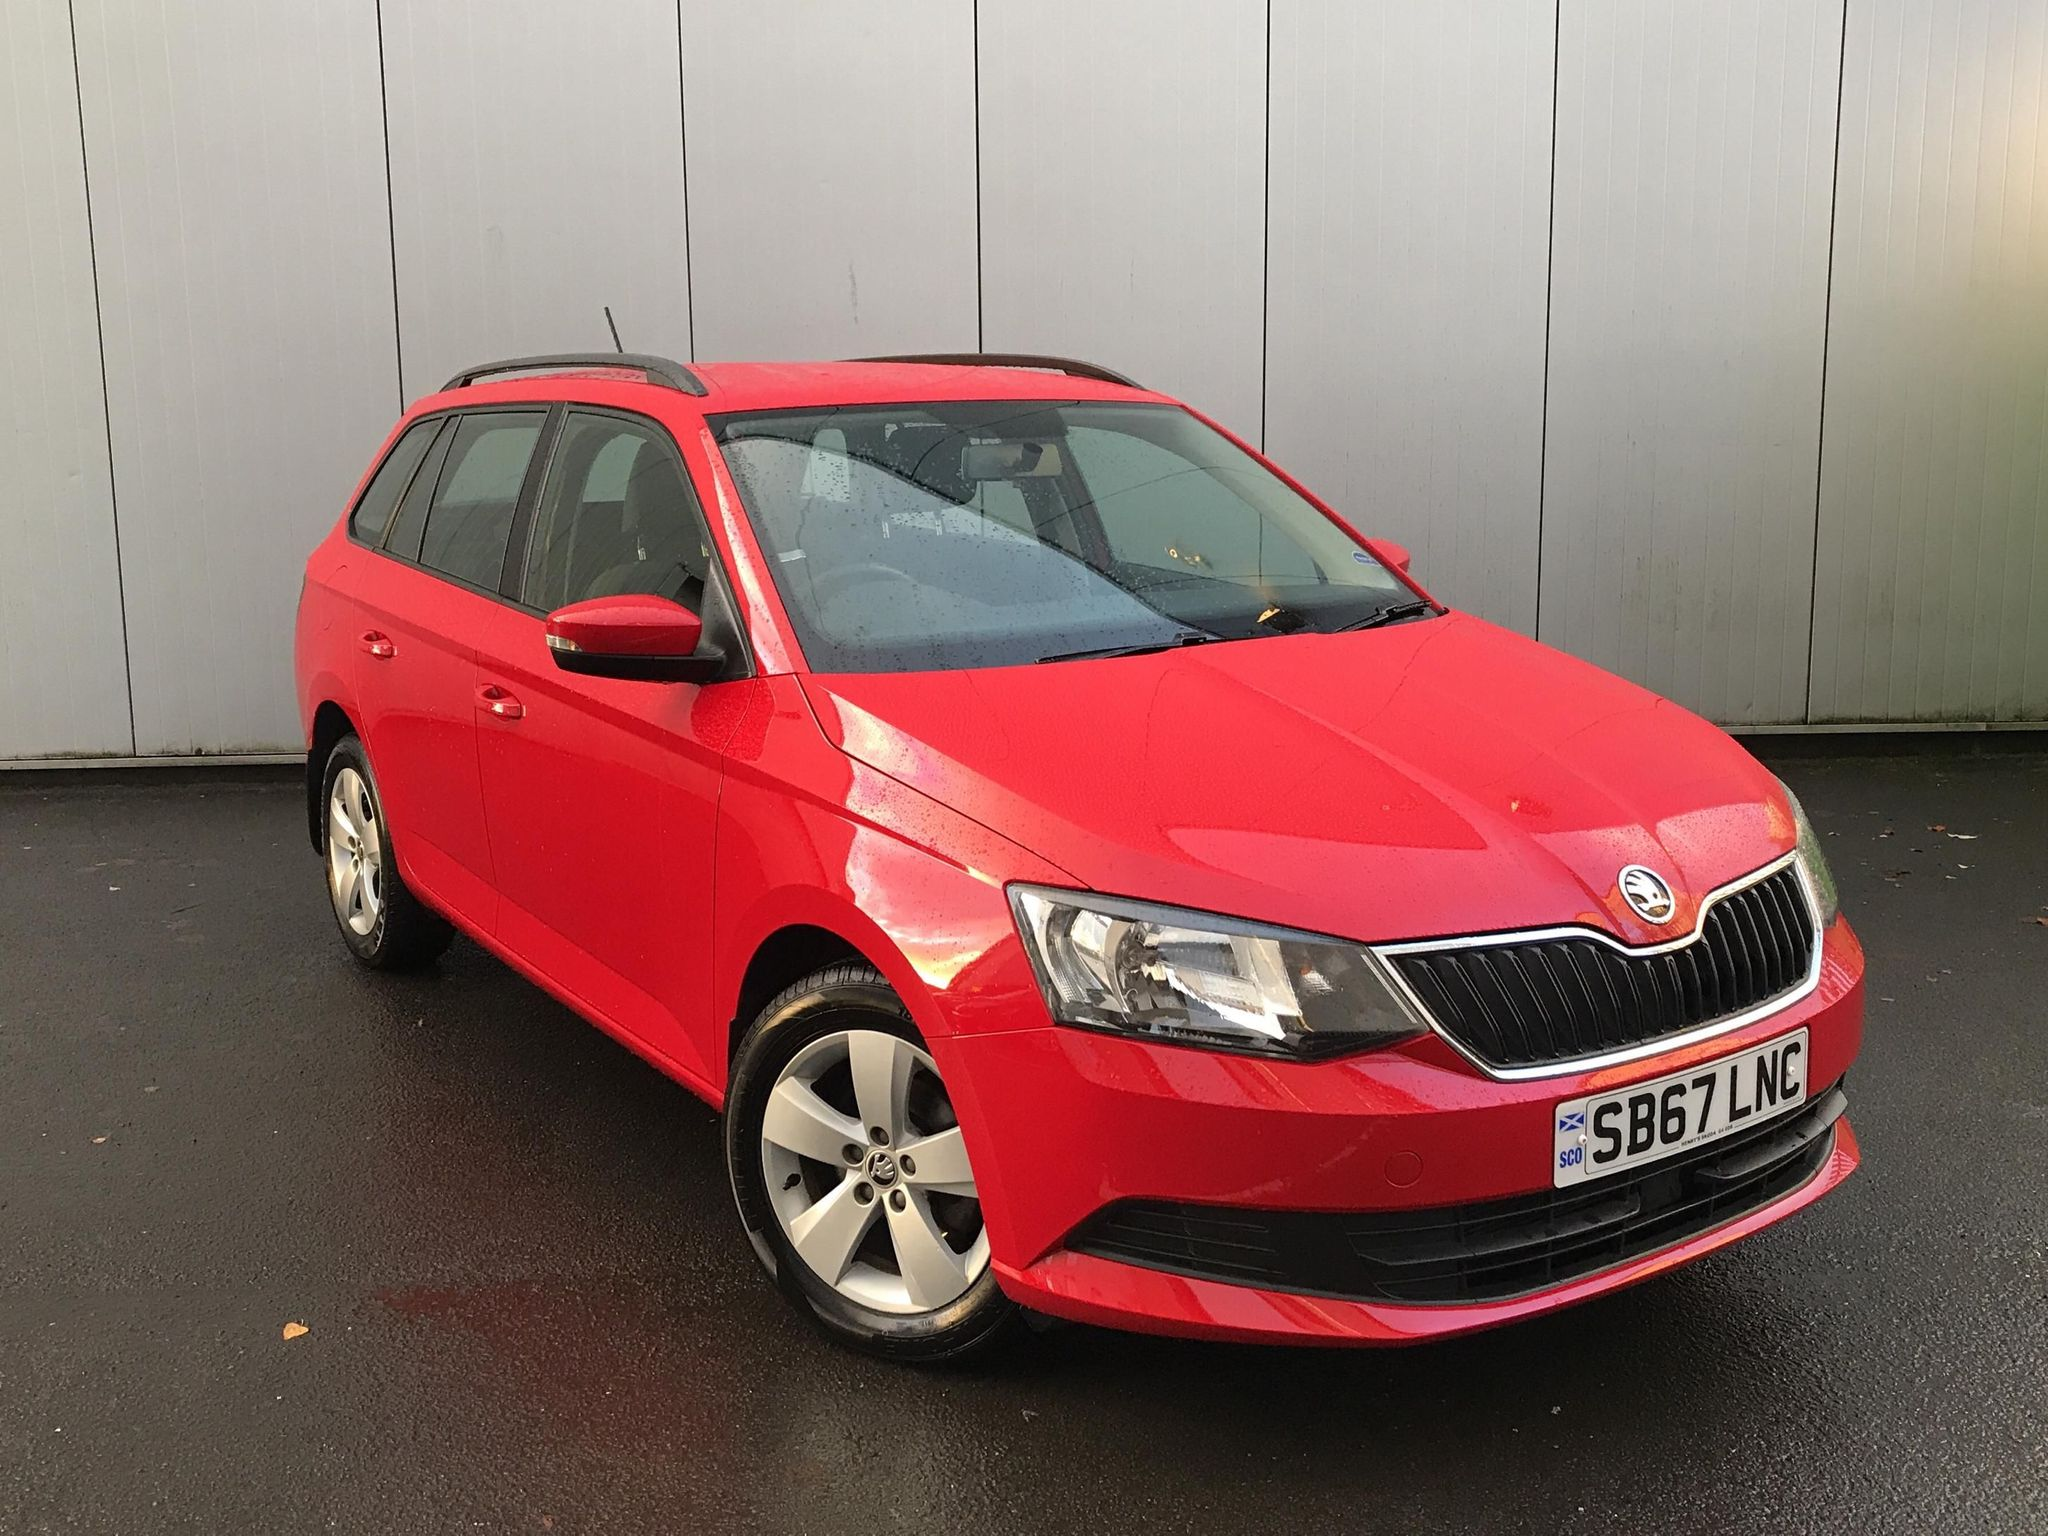 ŠKODA Fabia 1.0 TSI SE (95PS) S/S 5-Dr Estate